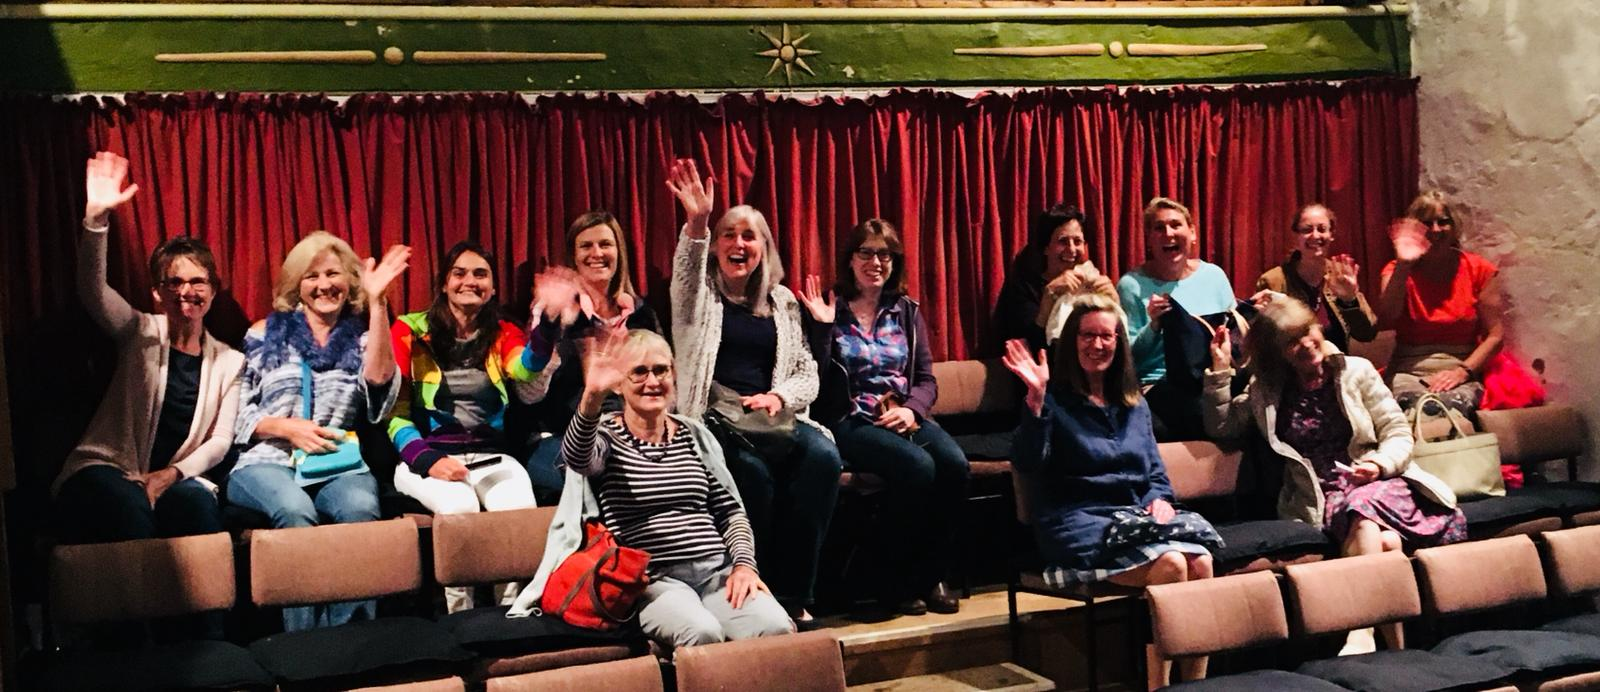 women in theatre waving